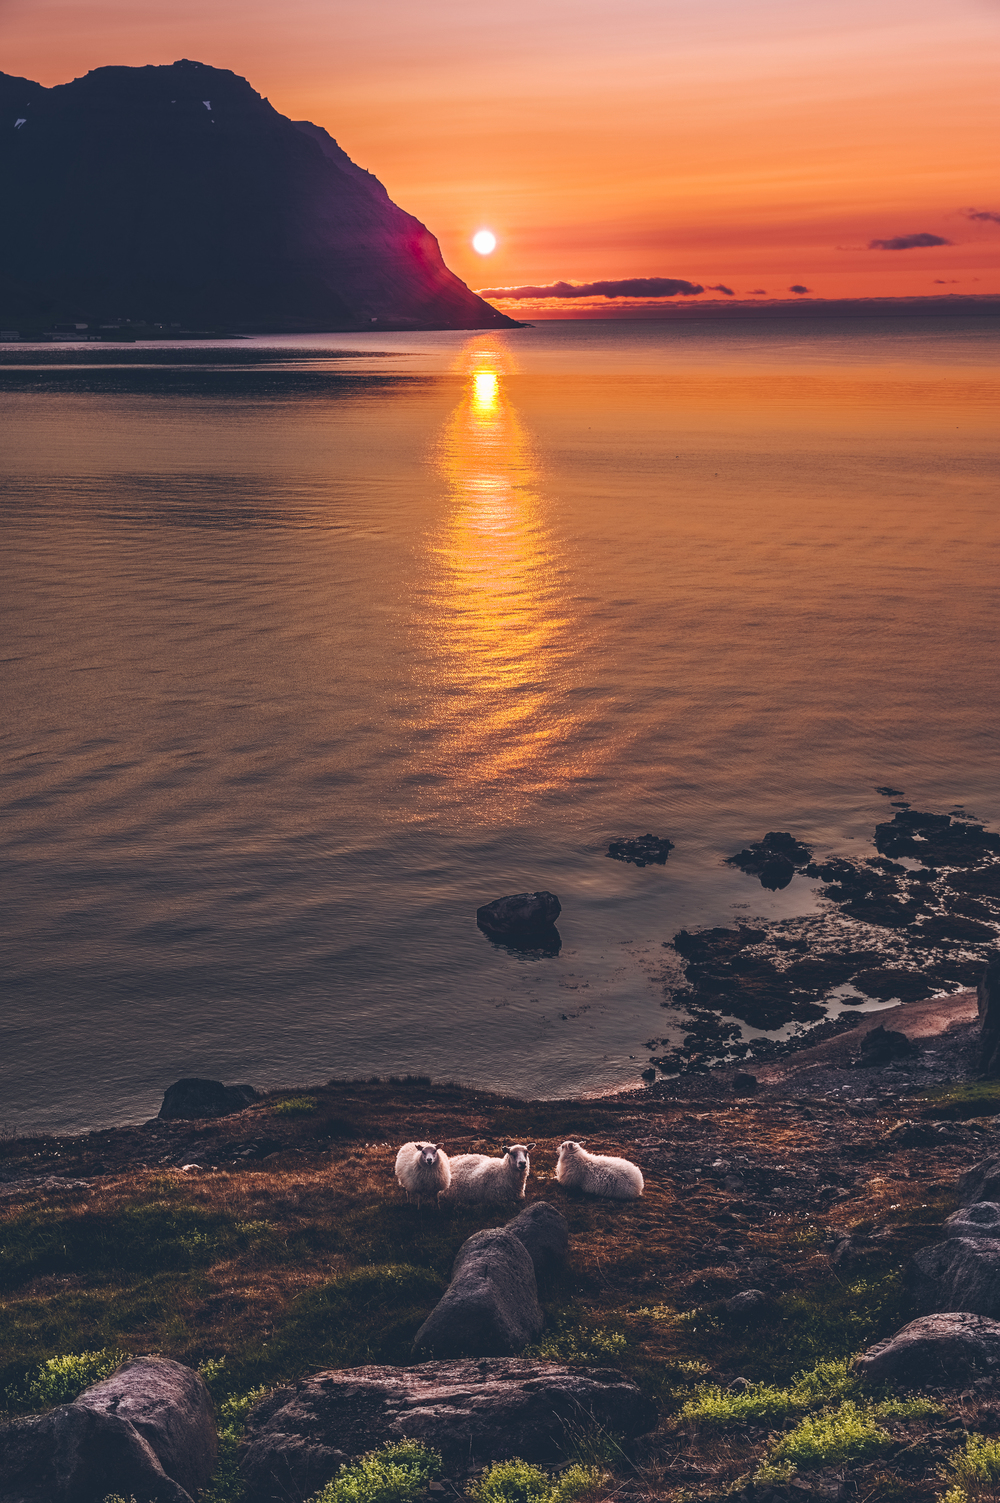 sheep at sunset near Ísafjörður.jpg